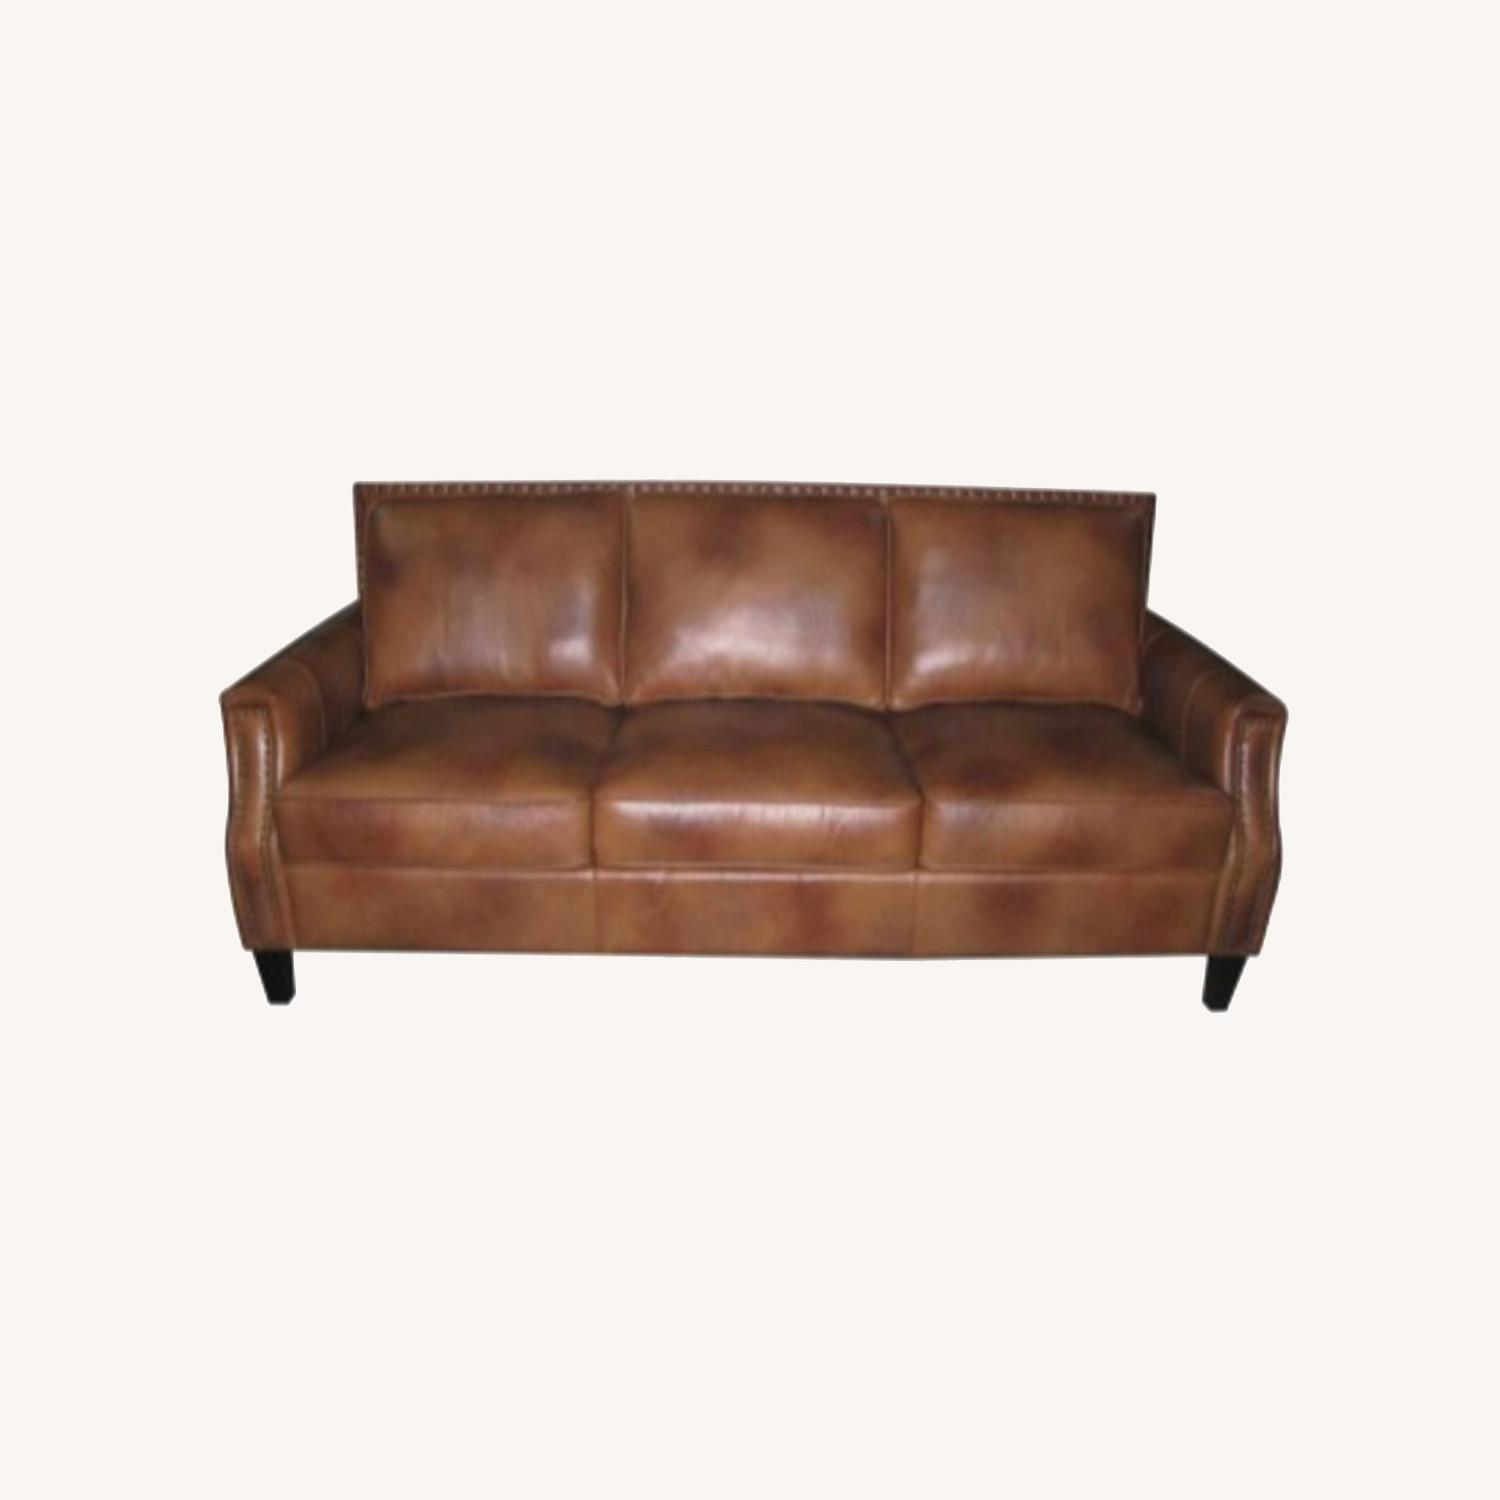 Sofa In Brown Sugar Leather Upholstery - image-3